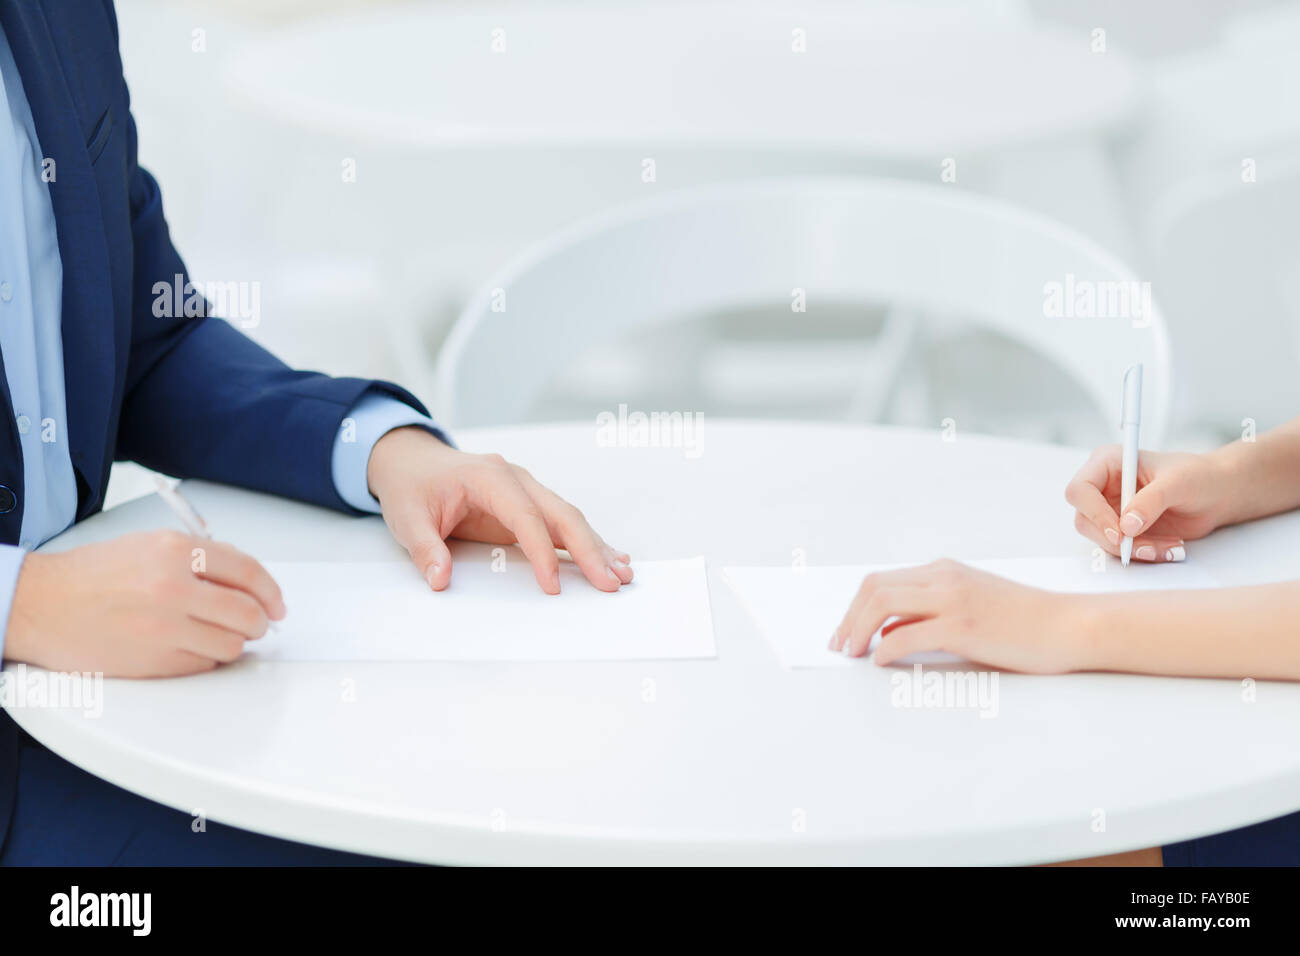 Two colleagues making personal notes. - Stock Image